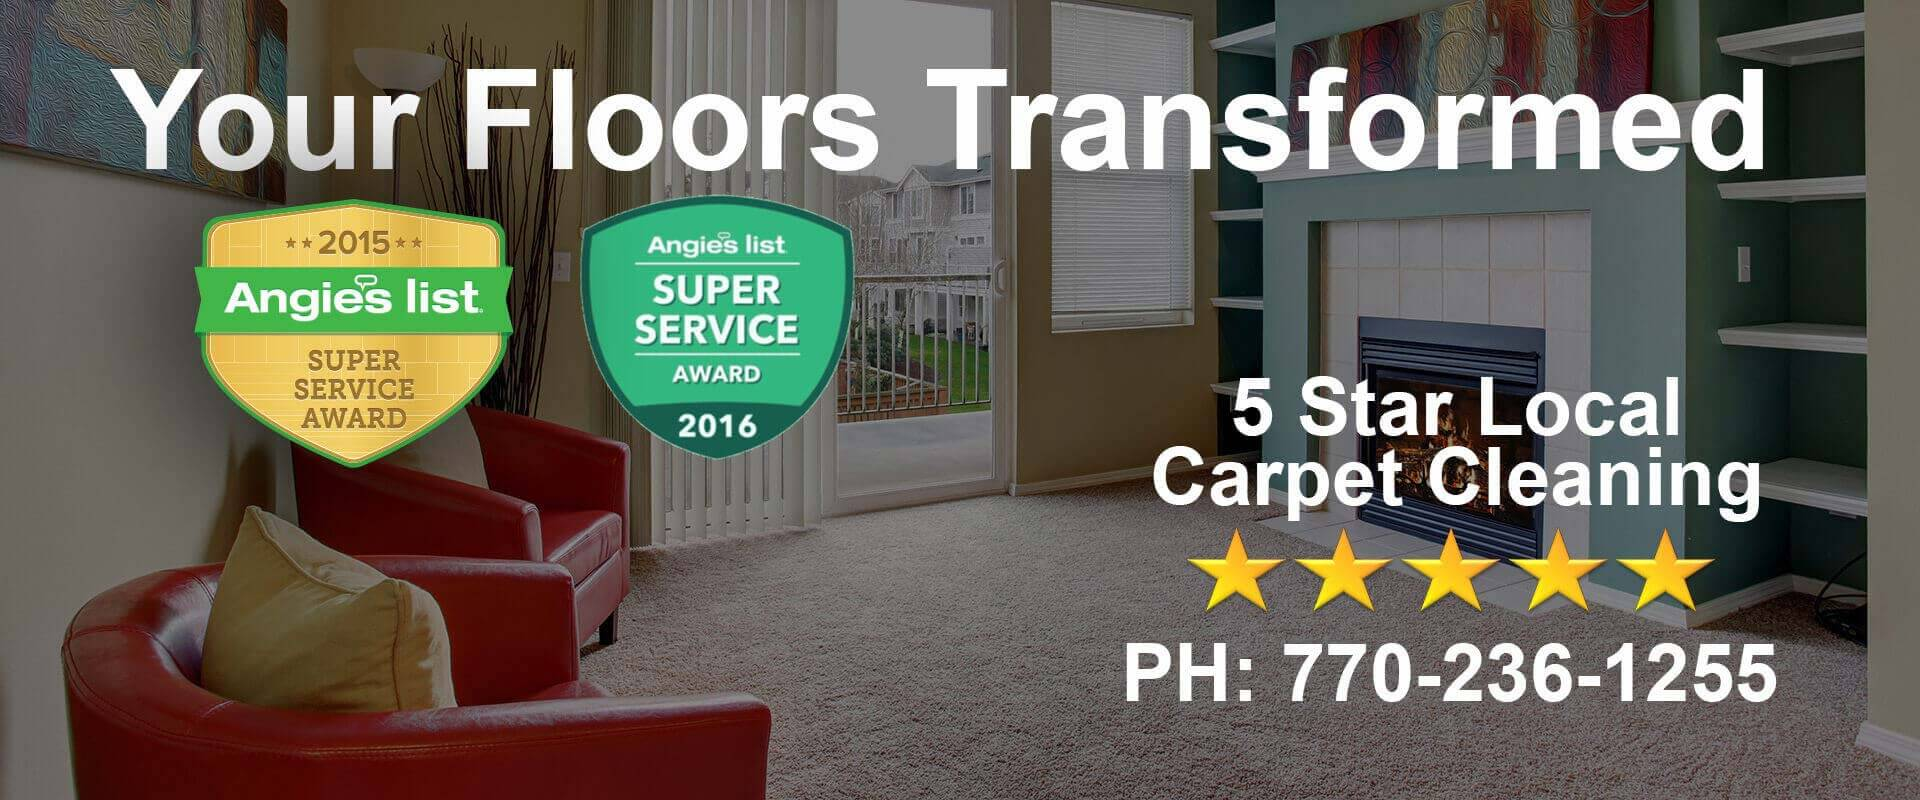 Your Floors Transformed